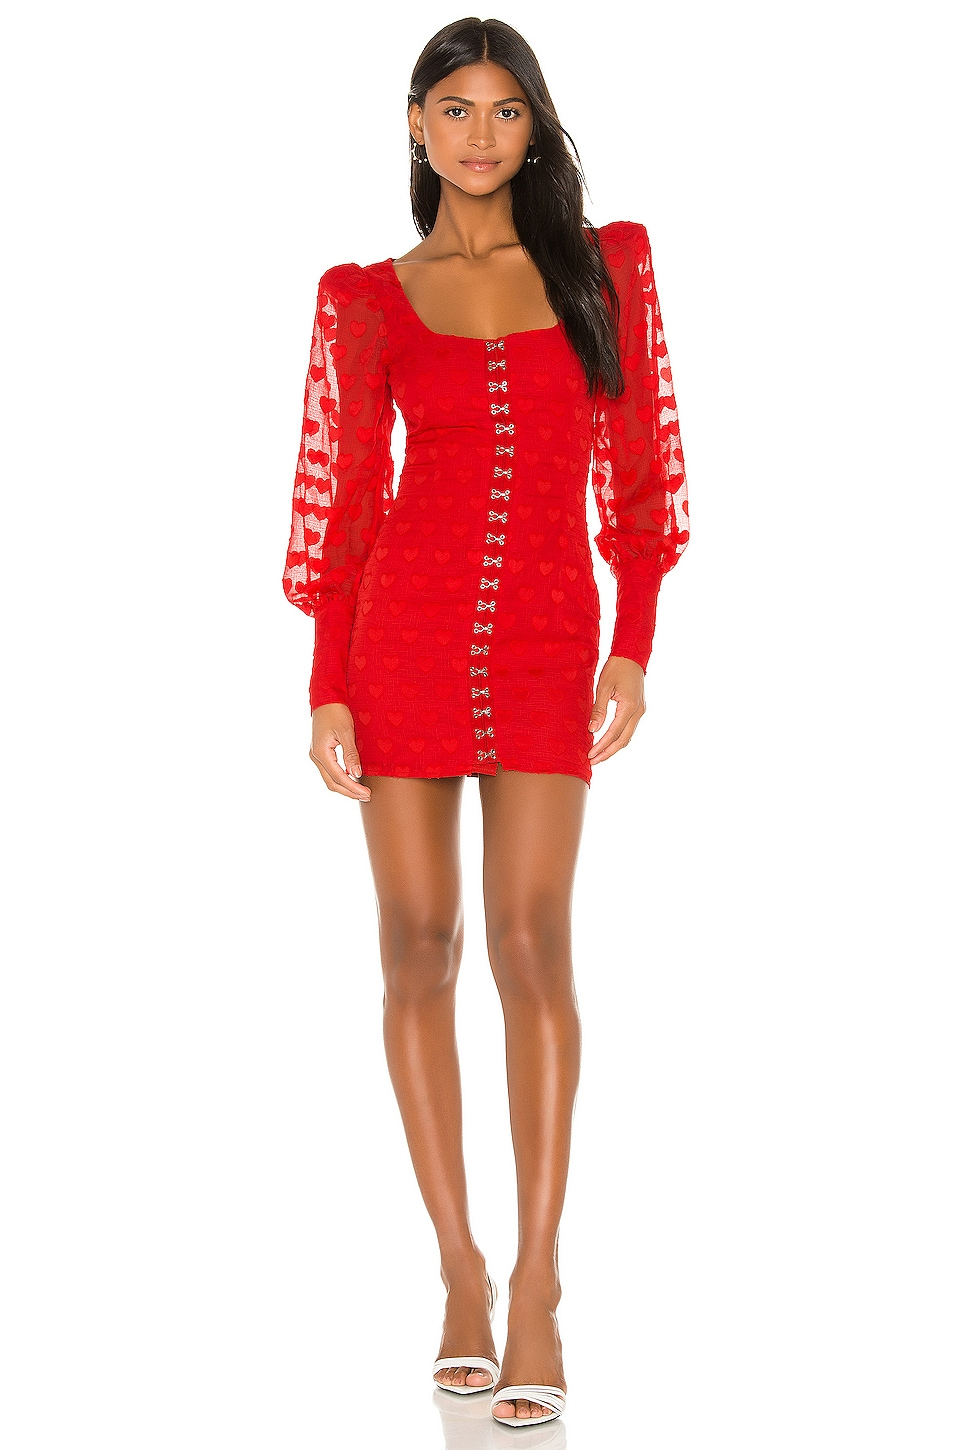 NBD Nayley Mini Dress in Red